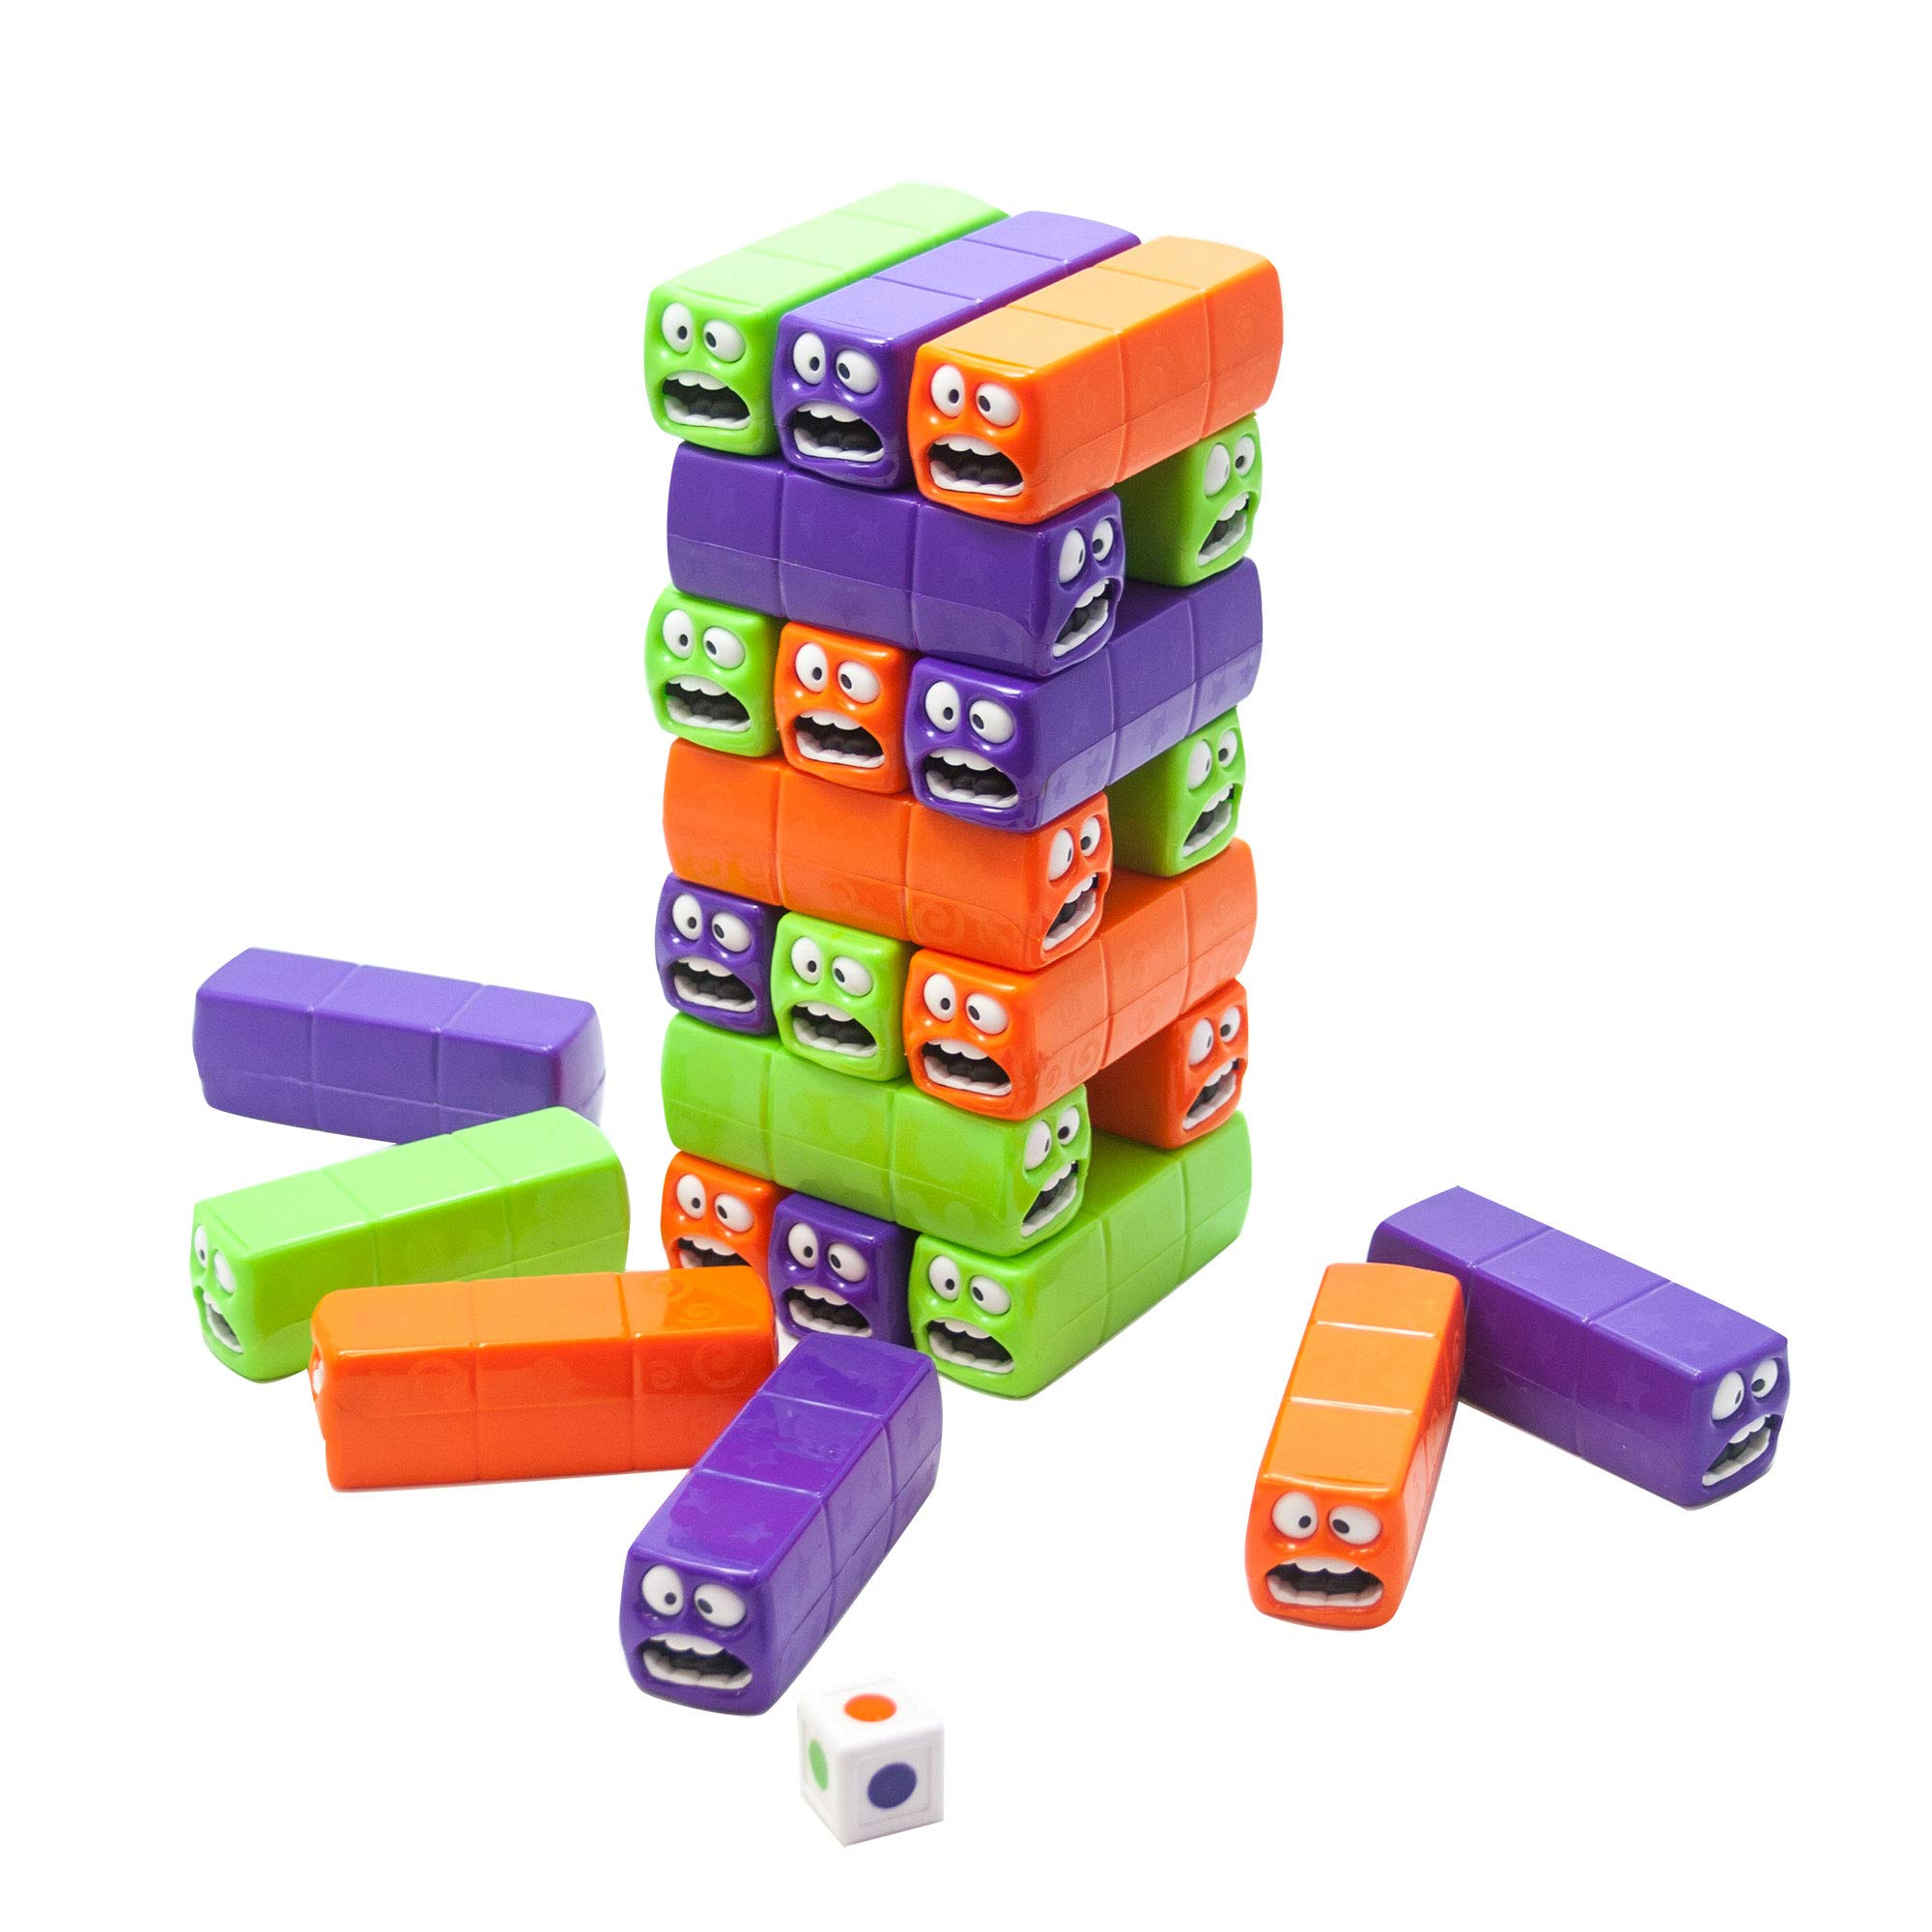 Fat Brain Toys Wobbly Worms Push 'n Pull Worm Tower by Fat Brain Toys